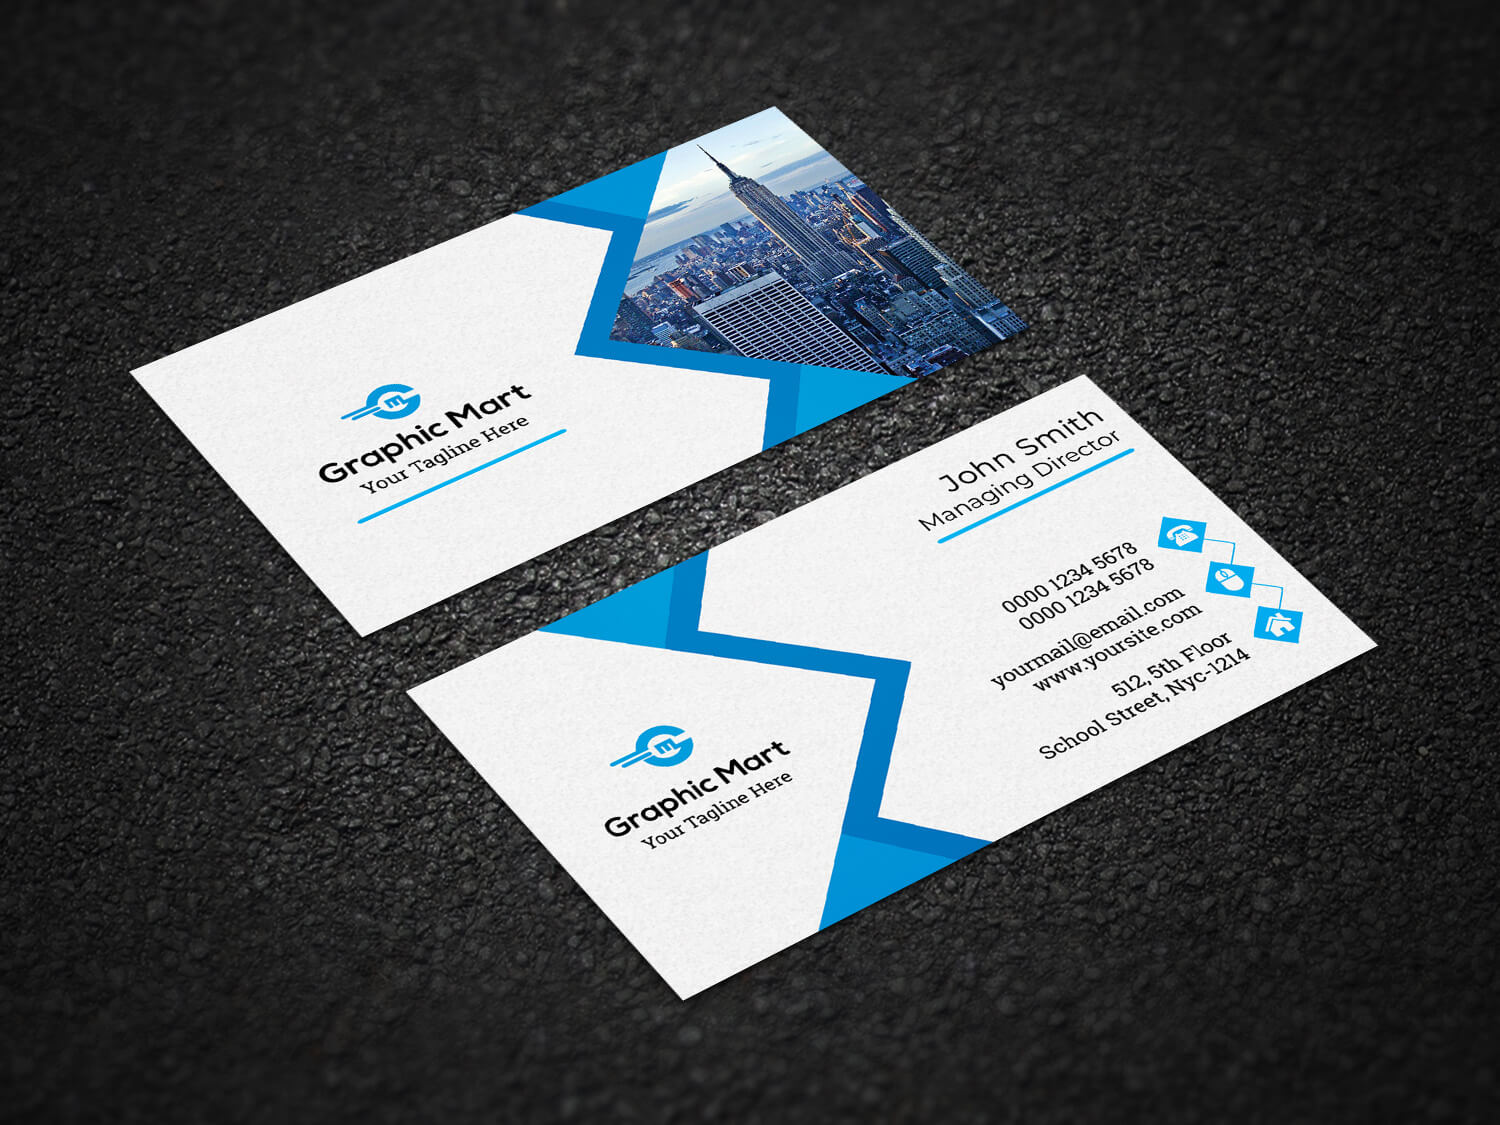 Minimalist Business Cardprottoy Khandokar On Dribbble intended for Qr Code Business Card Template